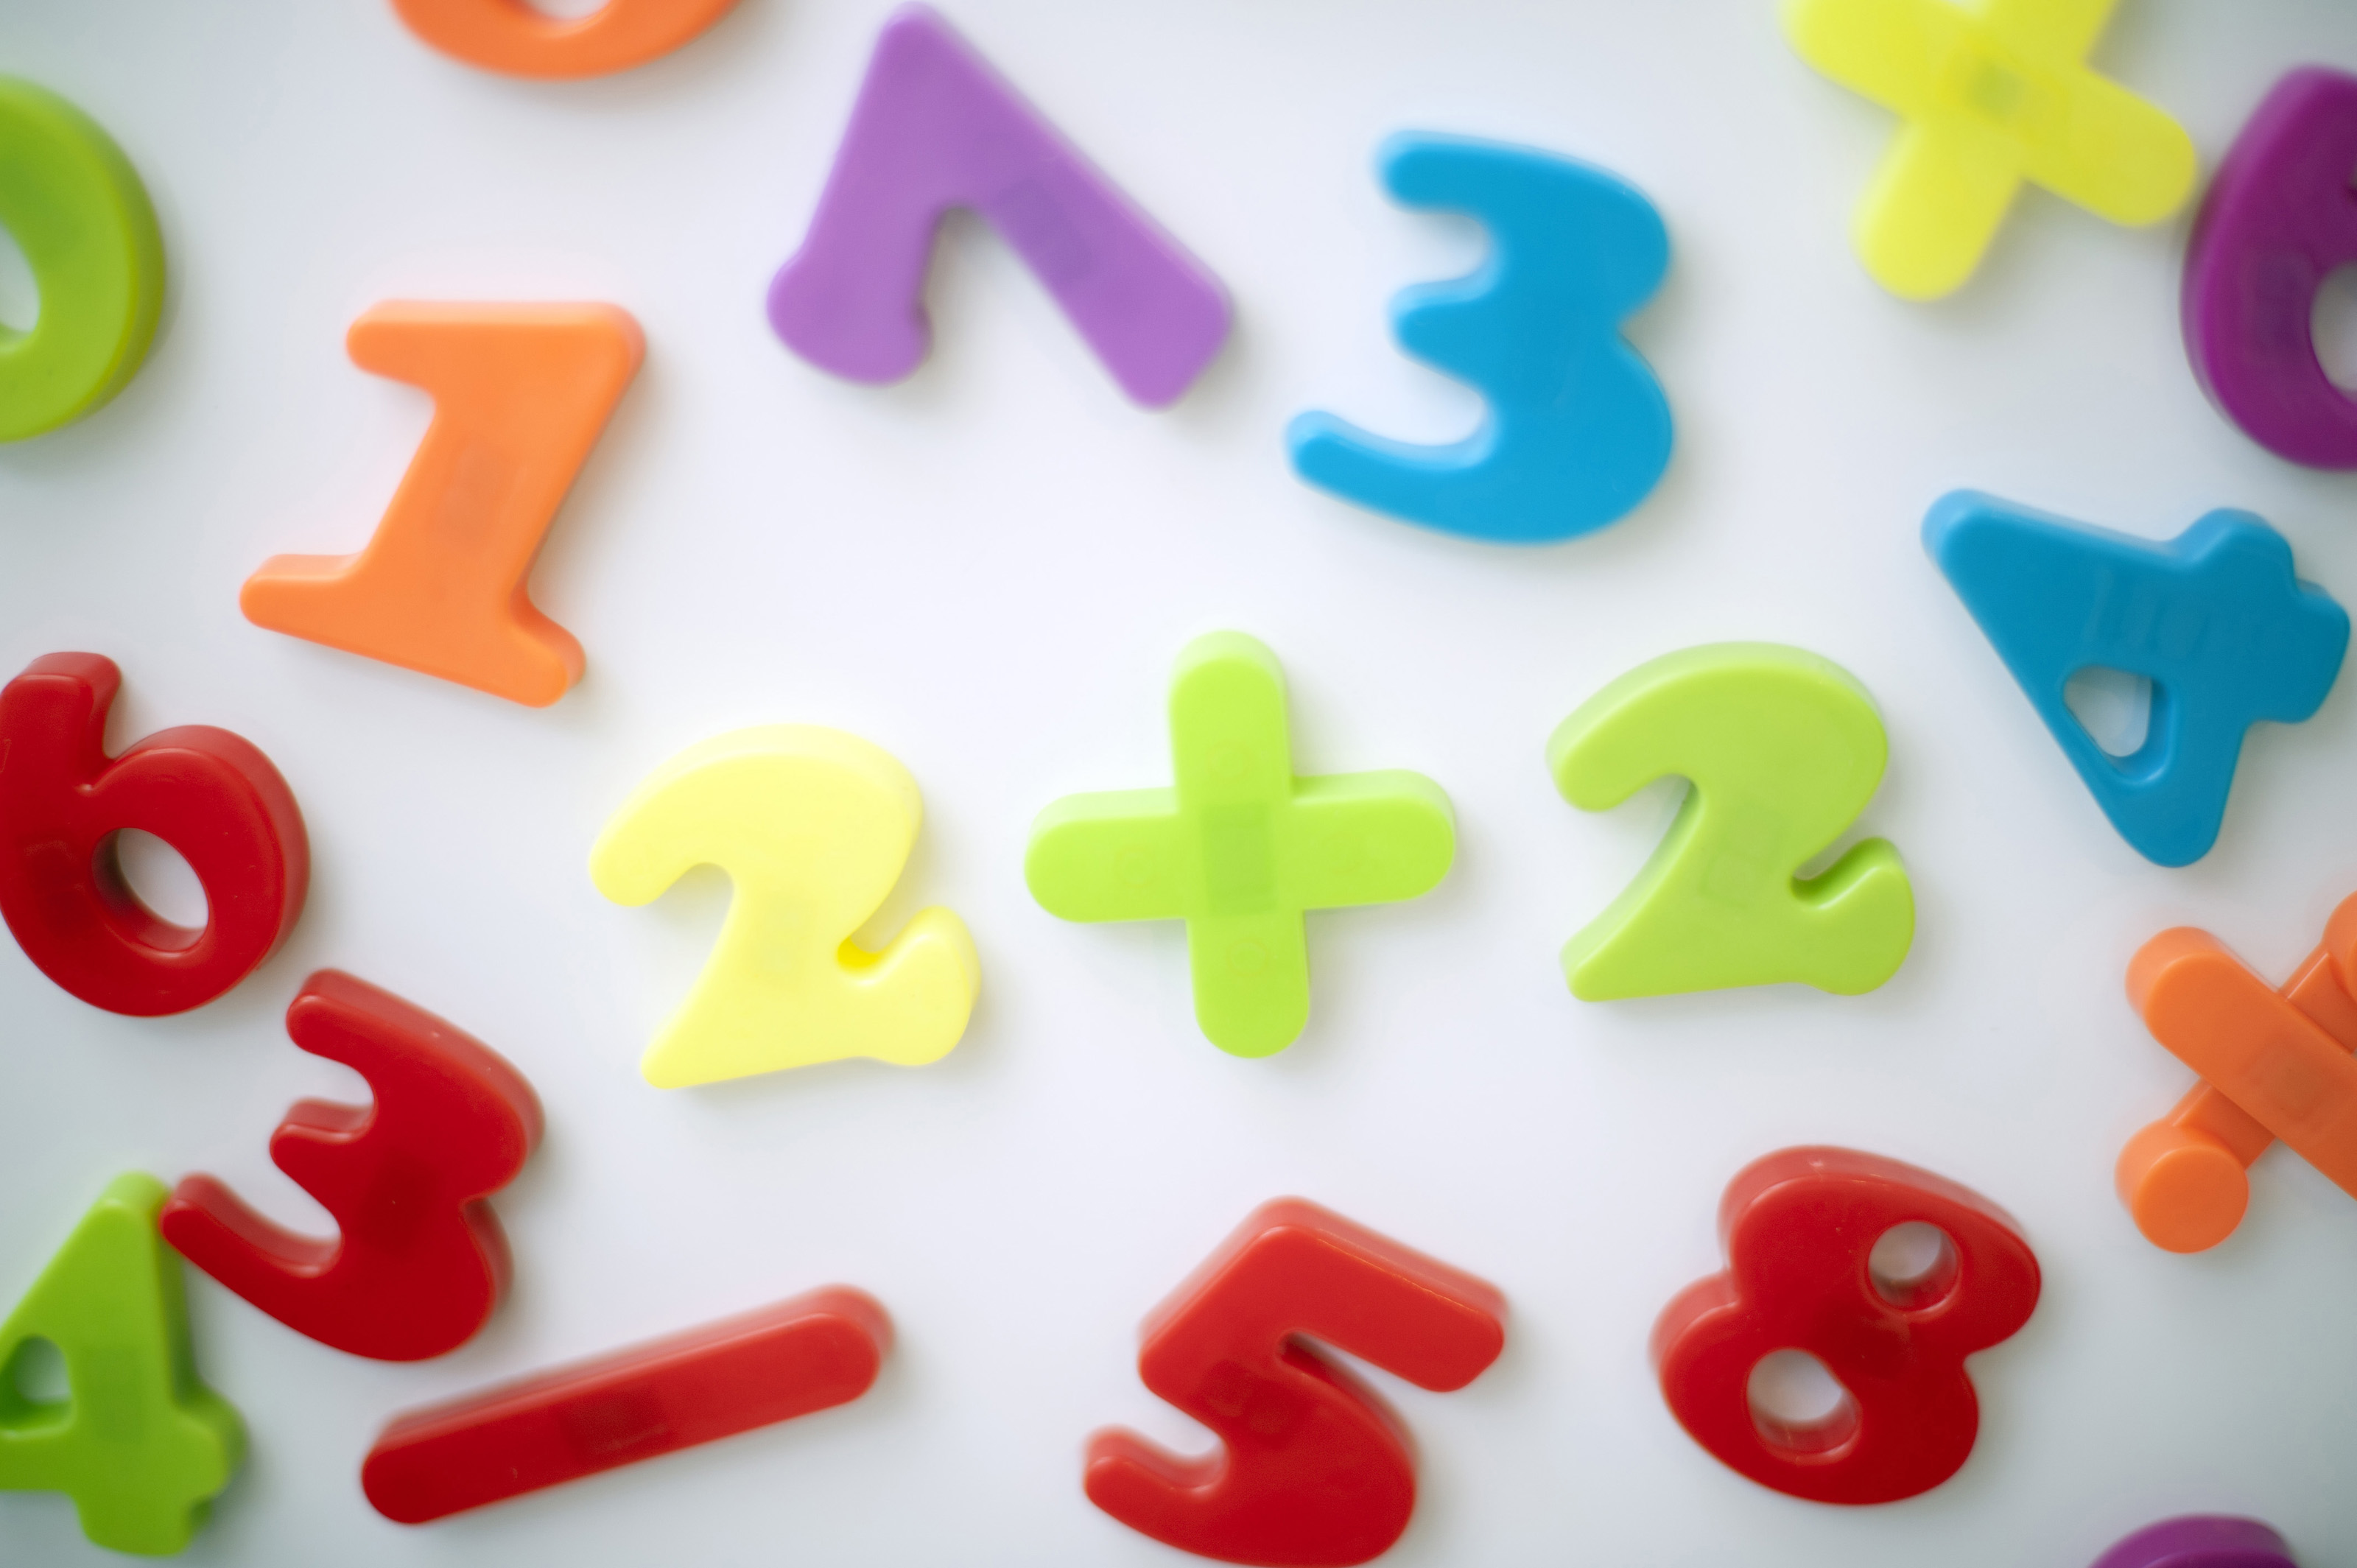 Free stock photo 6996 learning maths with colourful numbers learning maths with colourful plastic numbers and mathematical symbols scattered on a white background biocorpaavc Choice Image